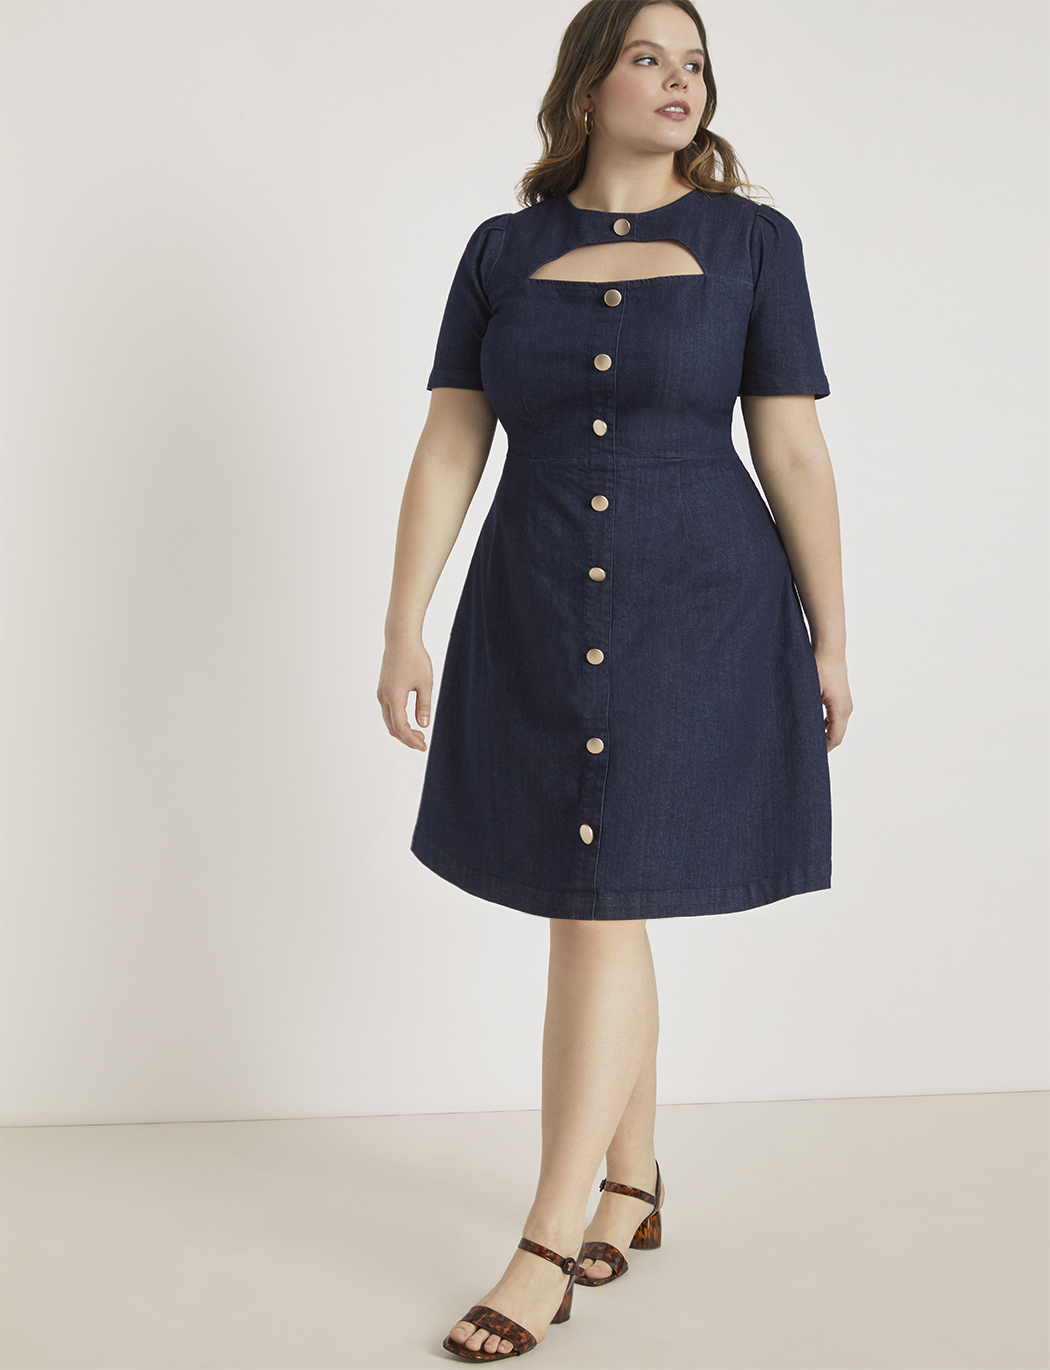 Cutout Button Front Denim Dress | Women\'s Plus Size Dresses ...